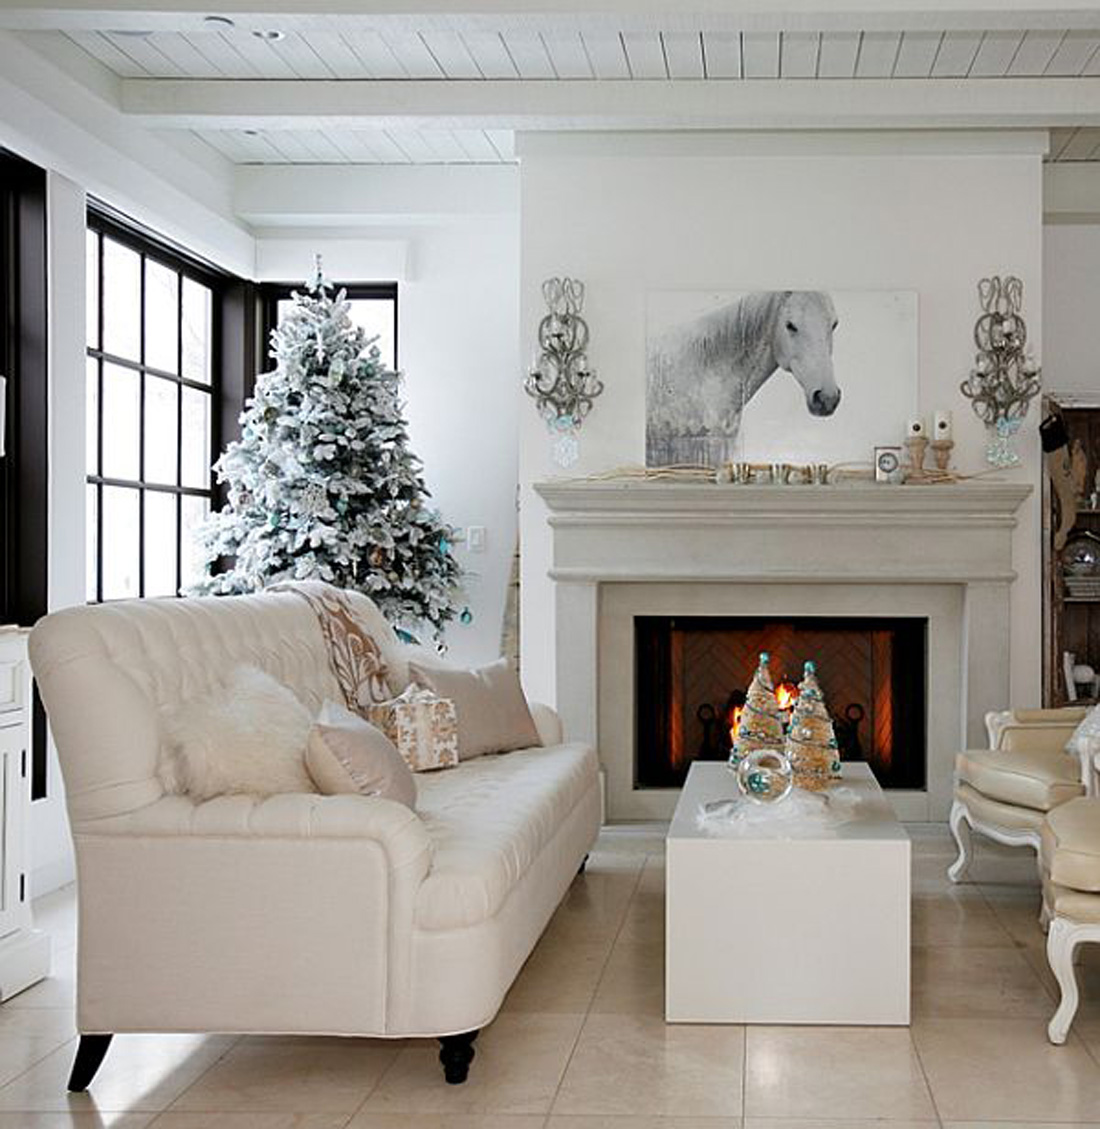 Magical christmas living room ideas Christmas decorations interior design